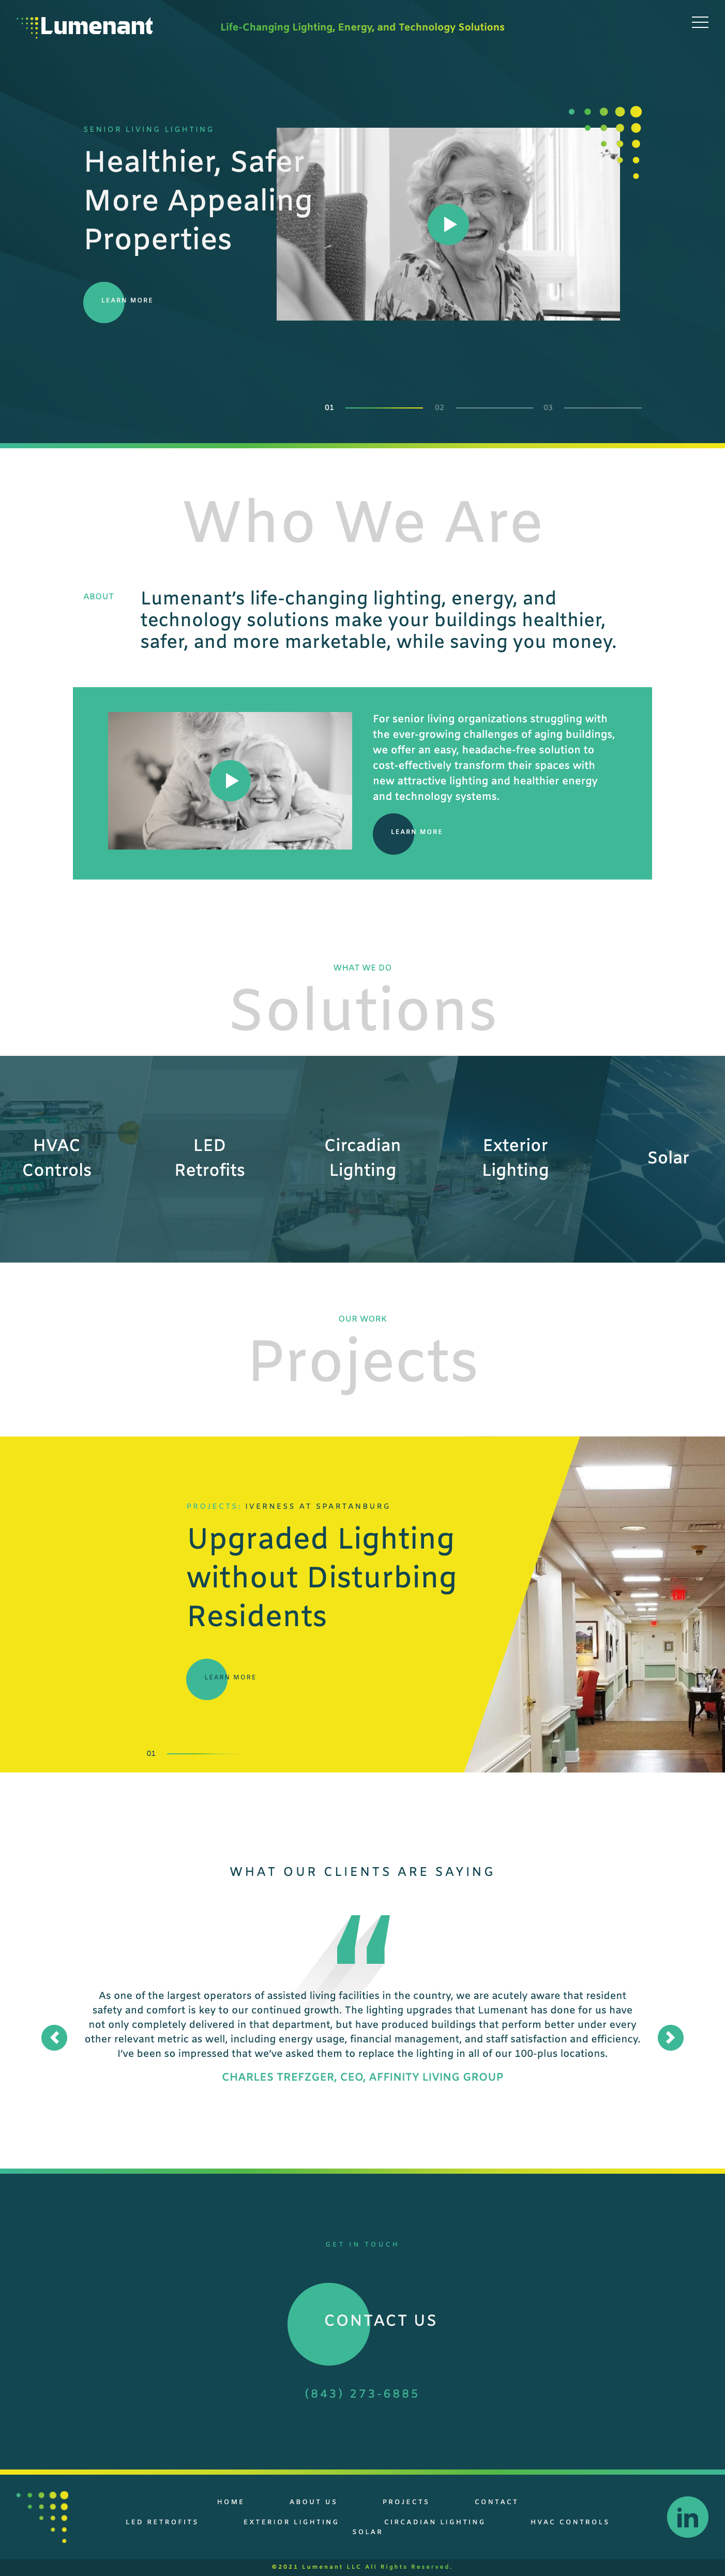 Lumenant Home Page